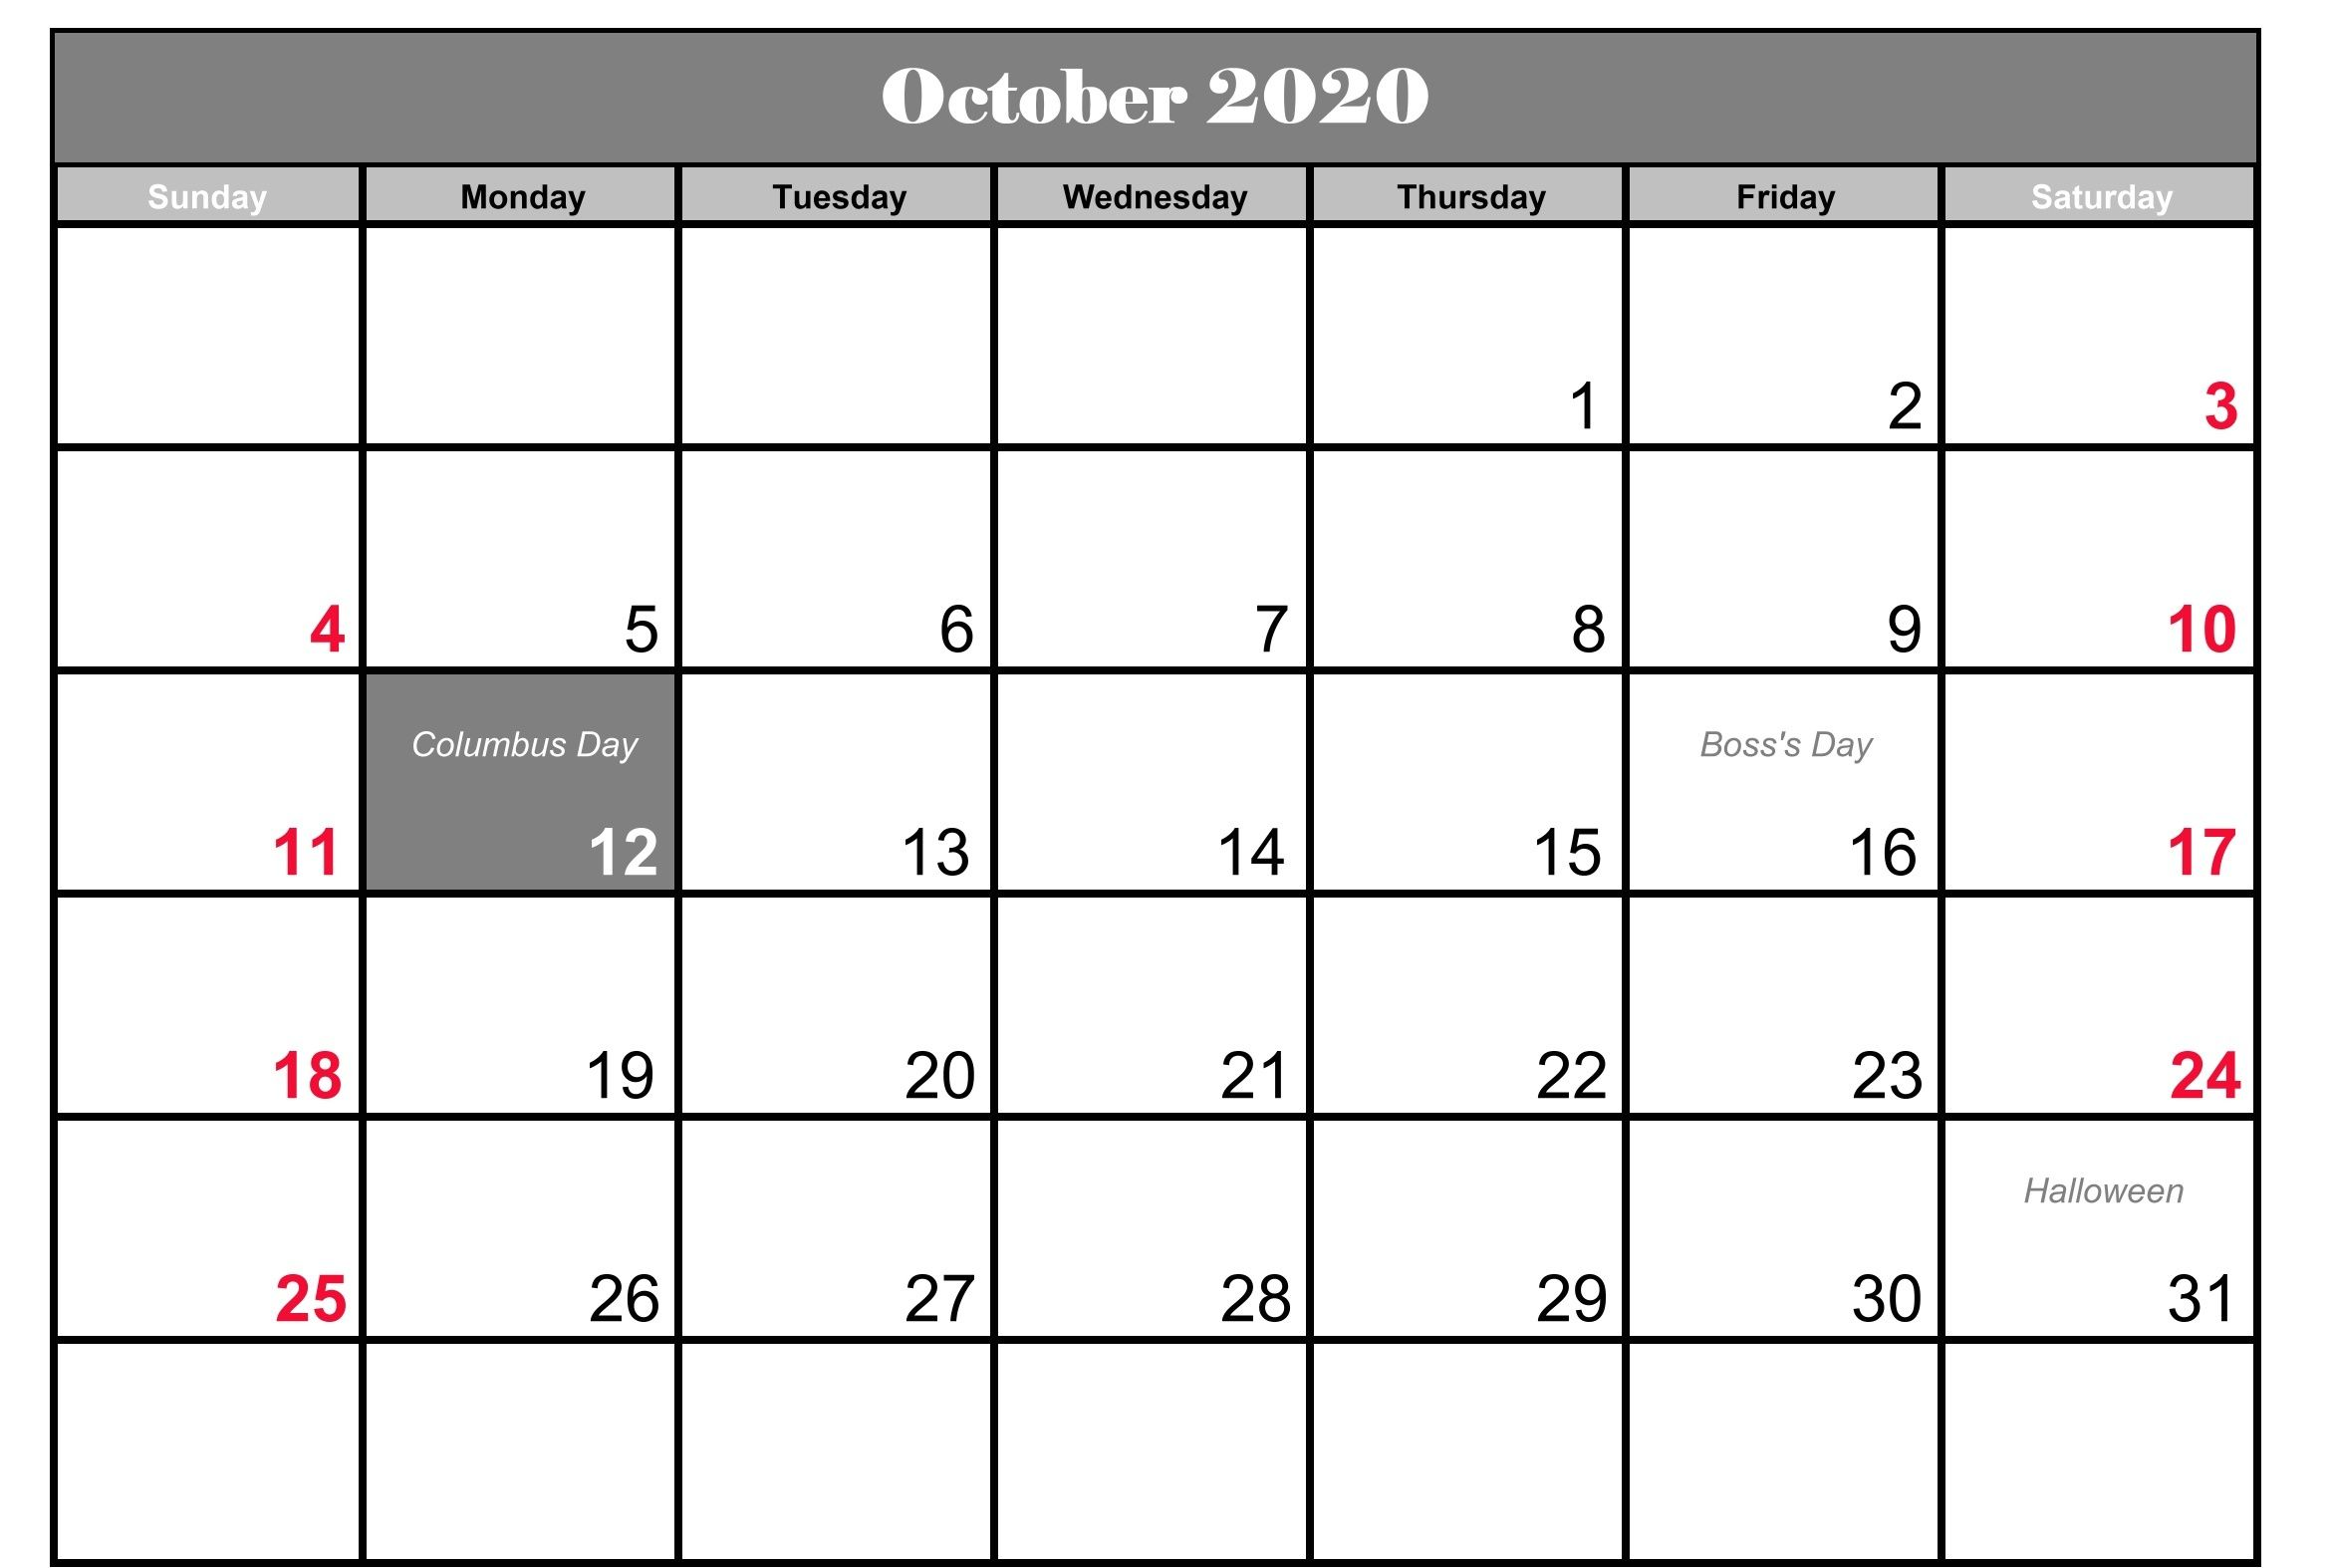 October 2020 Calendar Holidays